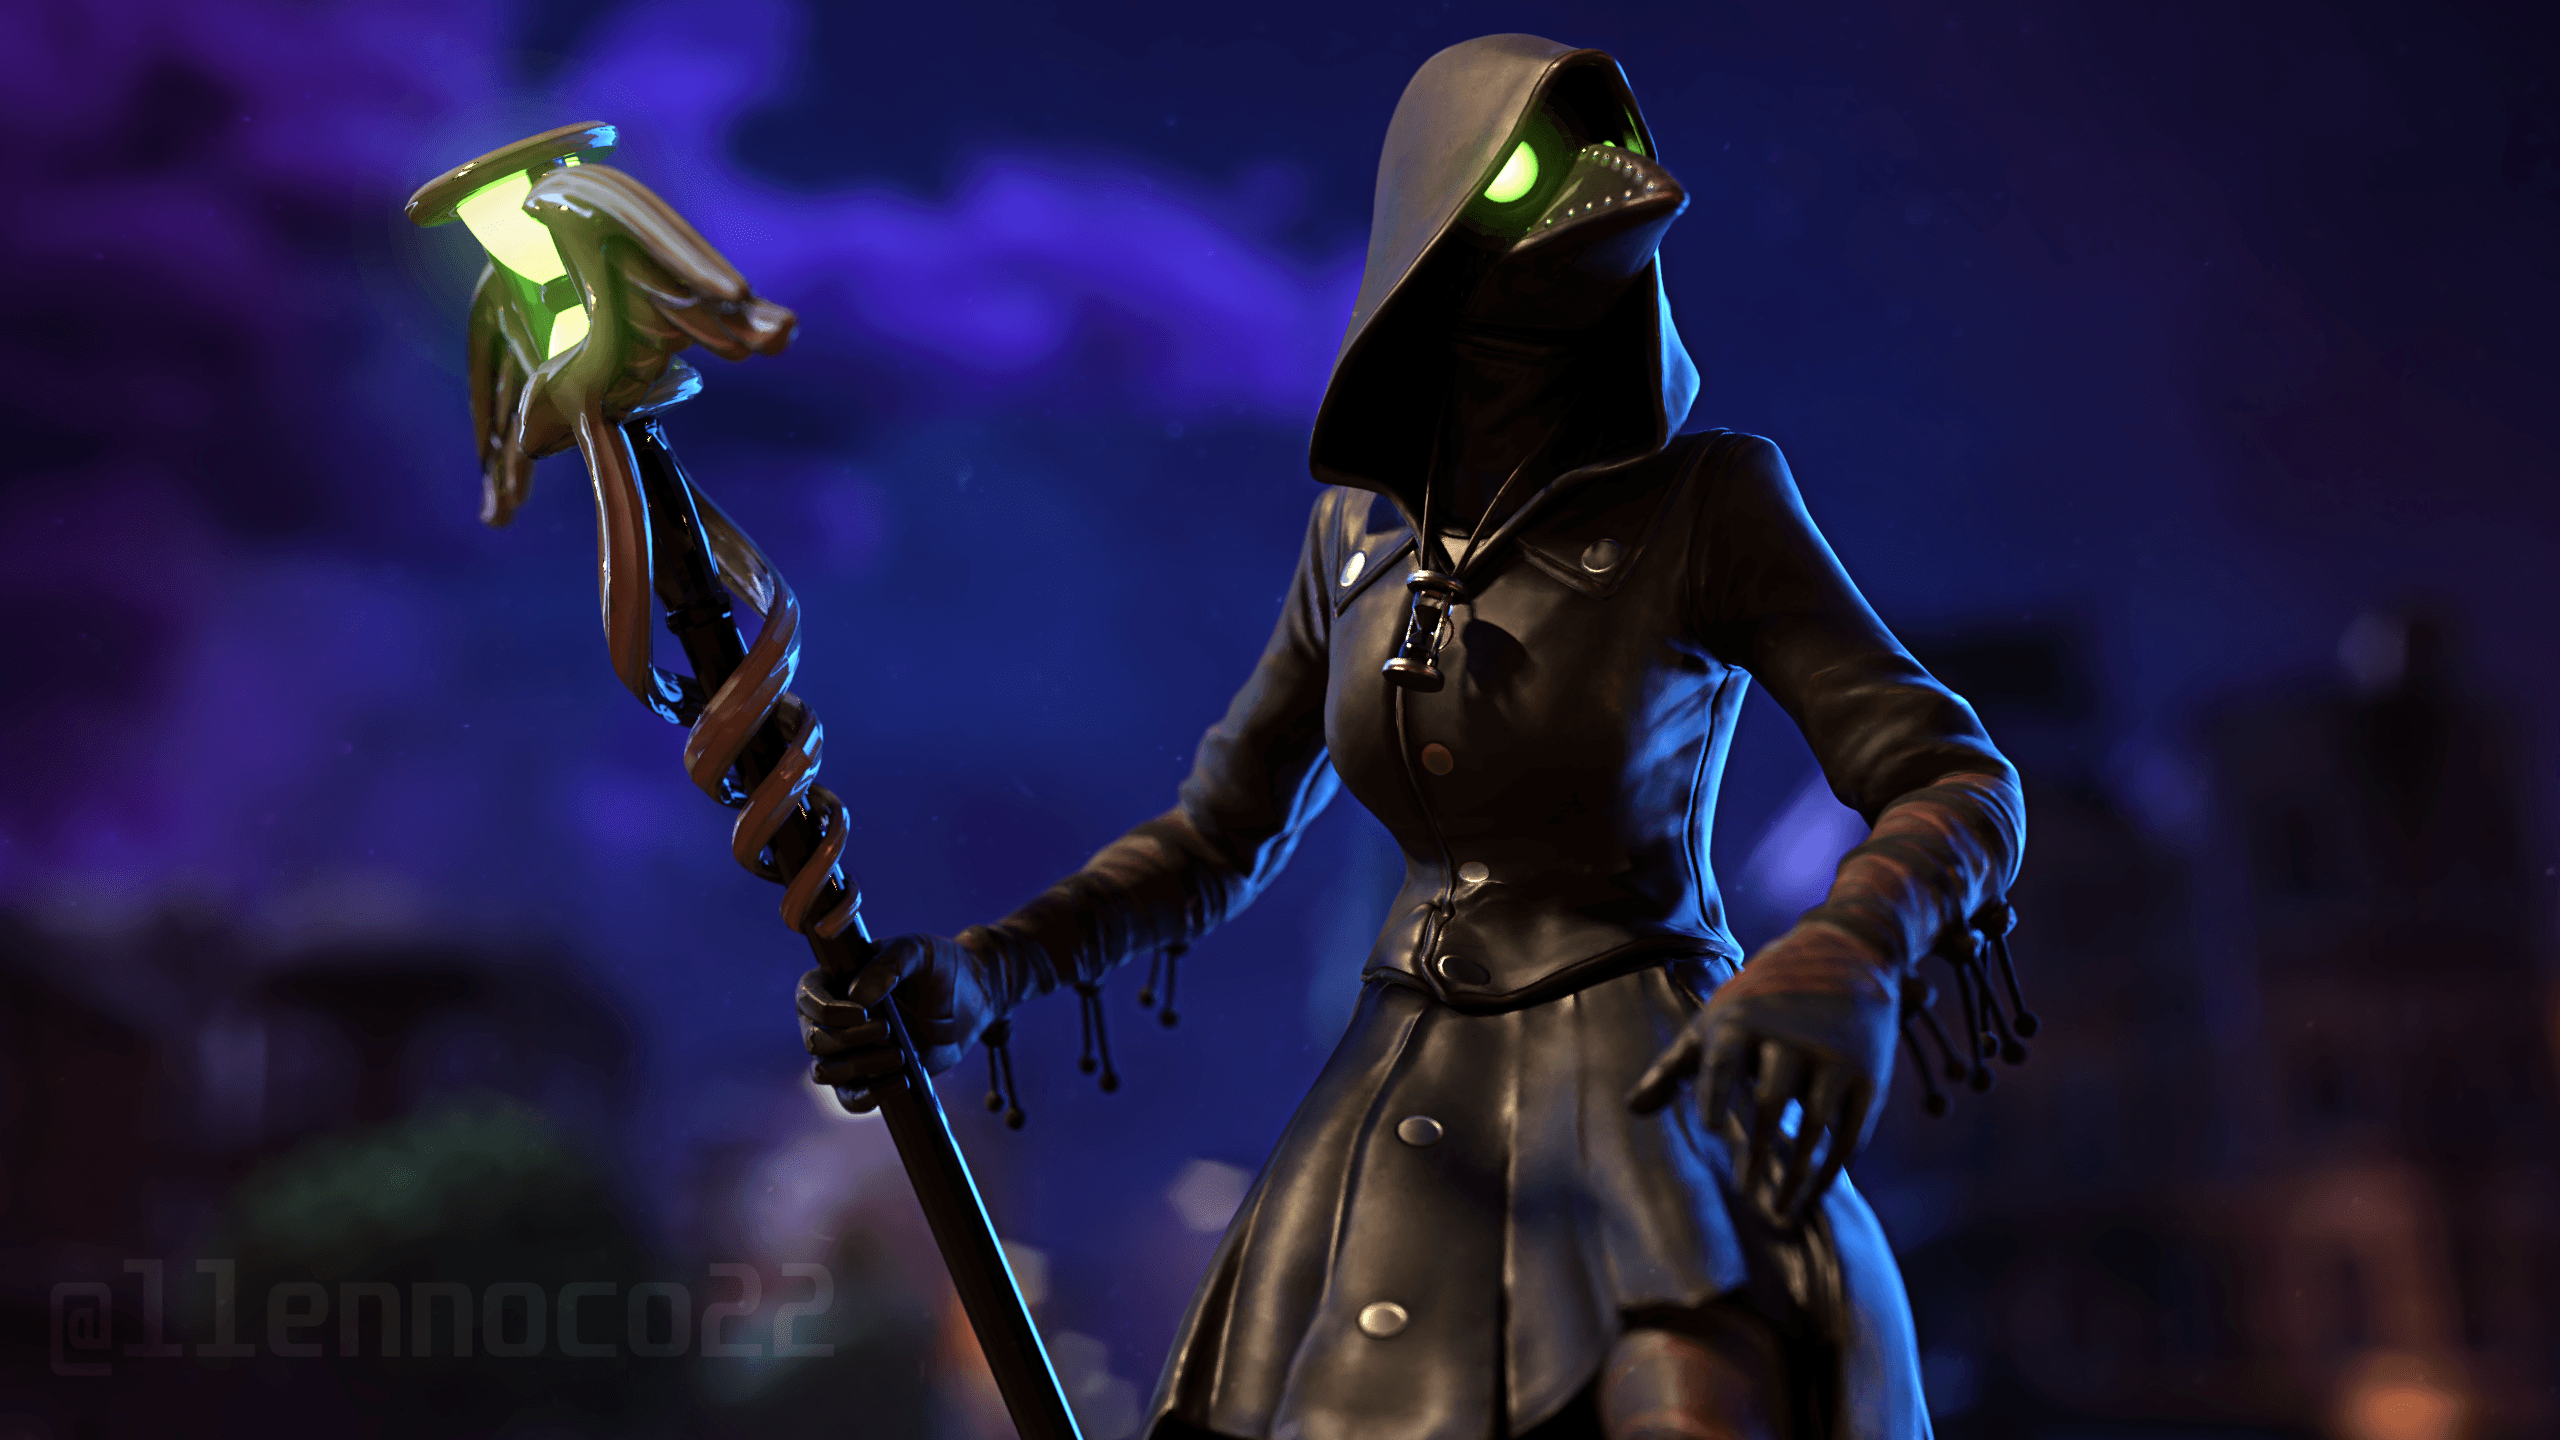 Download Fortnite Wallpaper 2560x1440